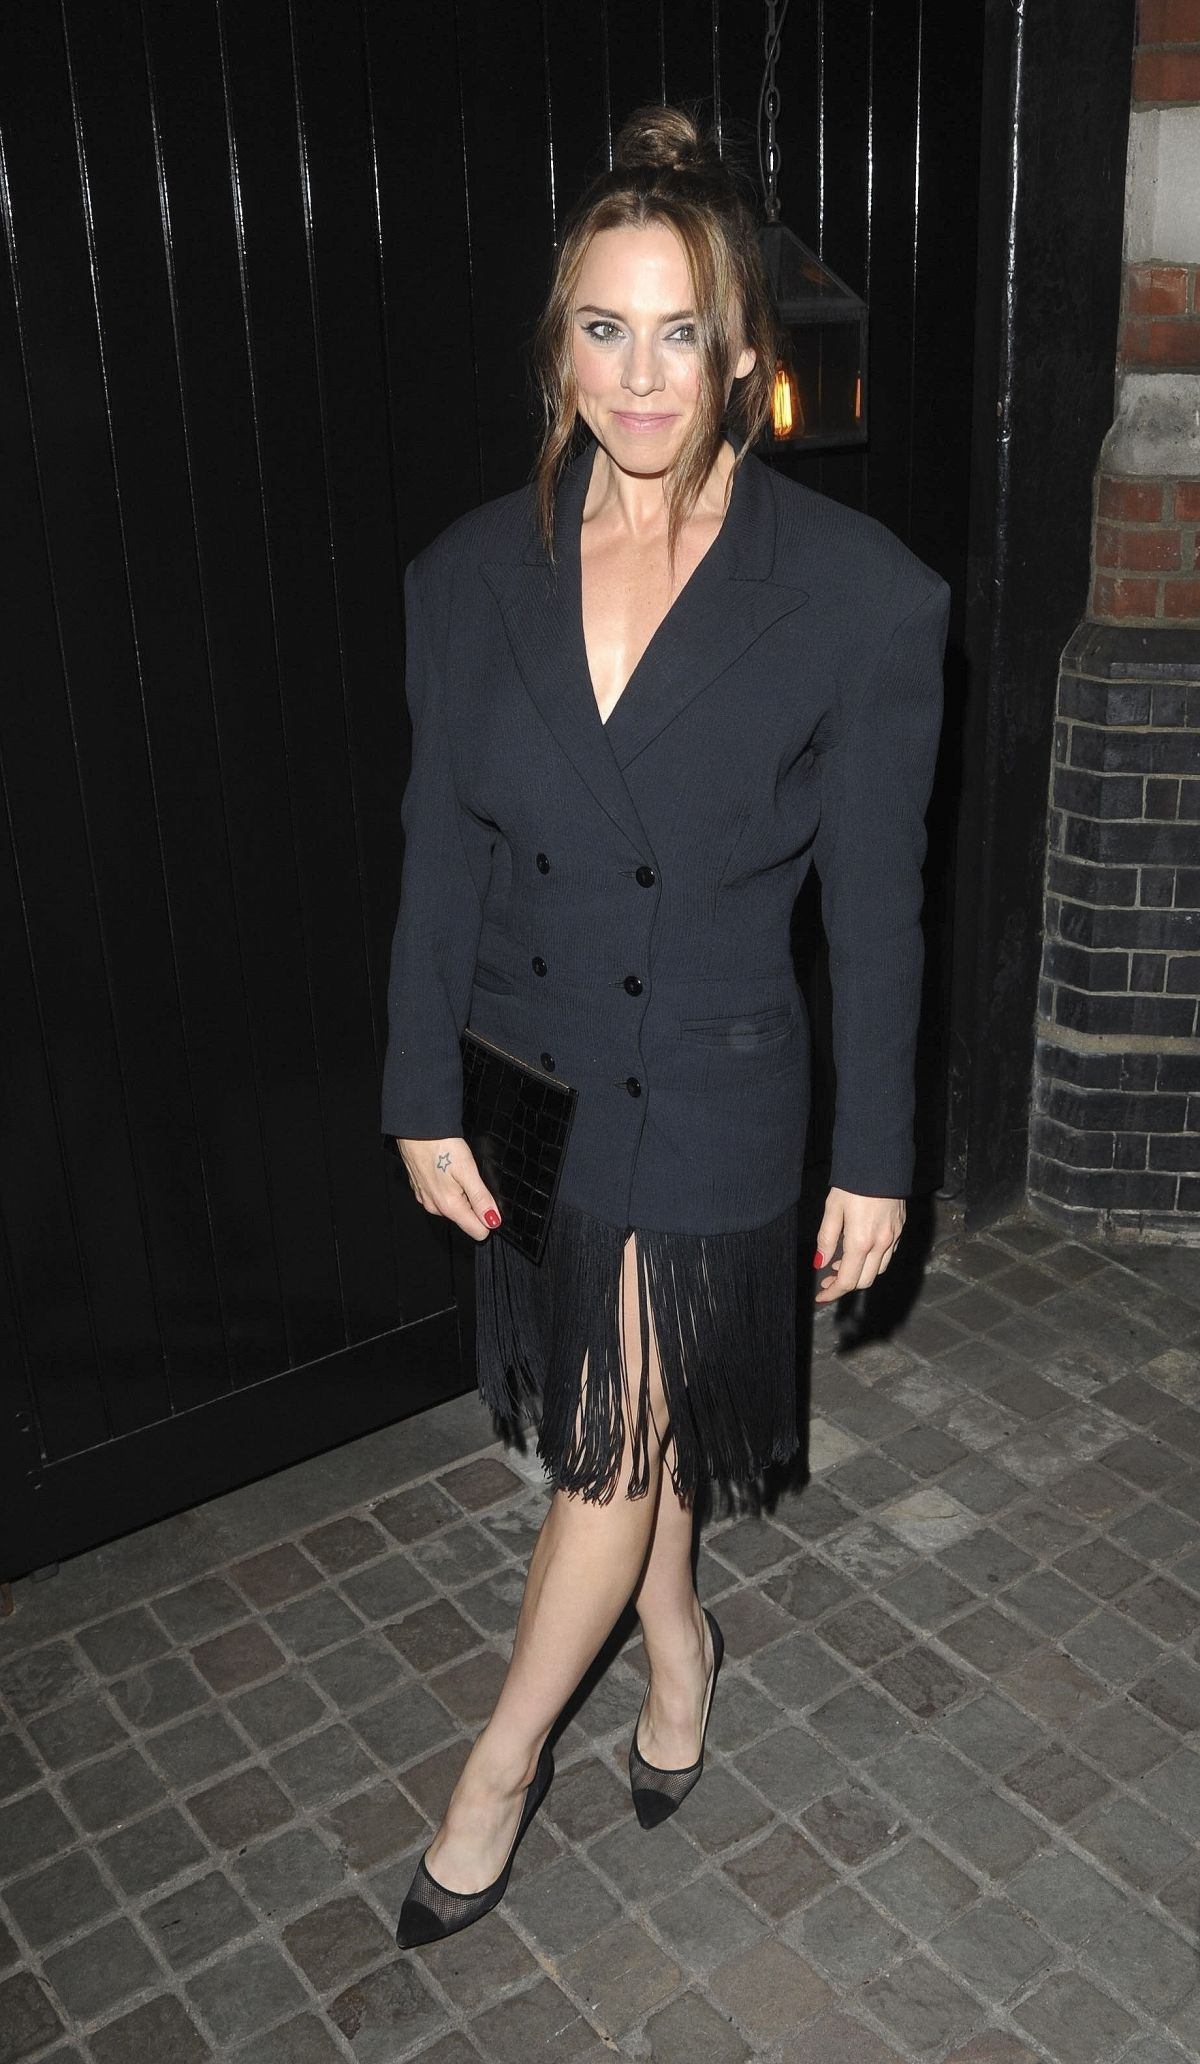 Melanie C Arrives at Chiltern Firehouse for Kylie Minogues birthday